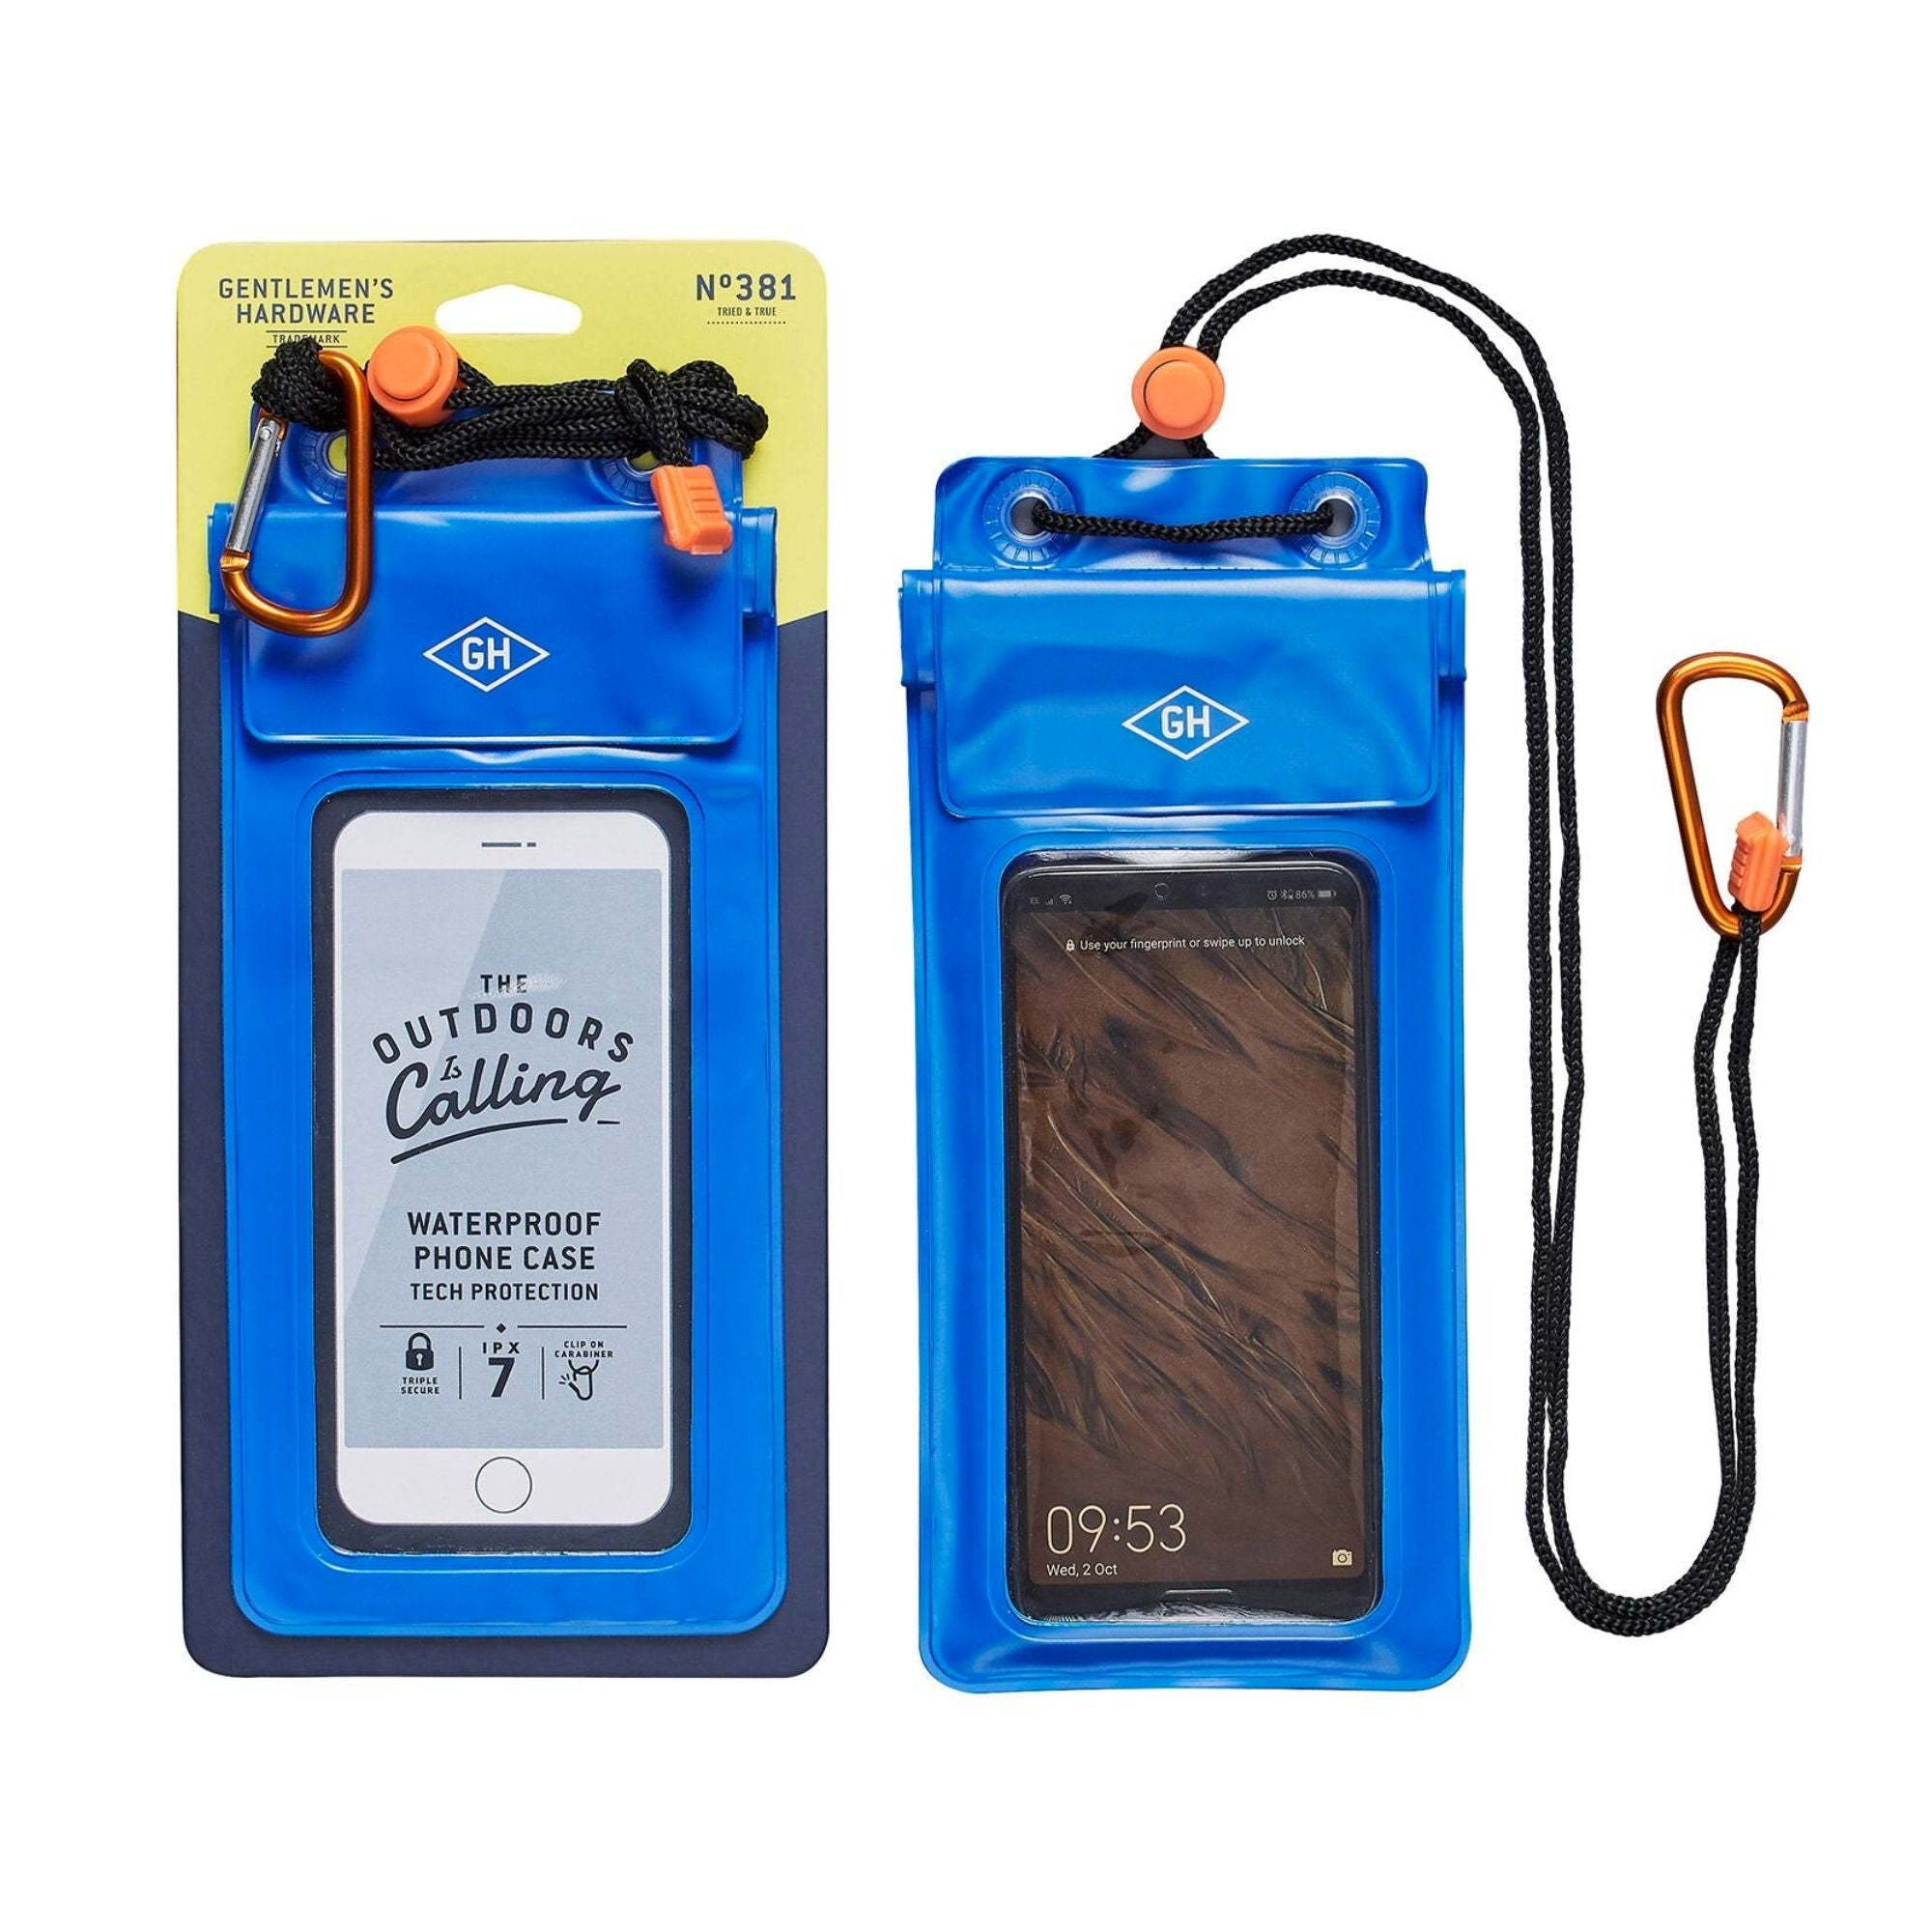 Gentlemen's Hardware Waterproof Phone Case